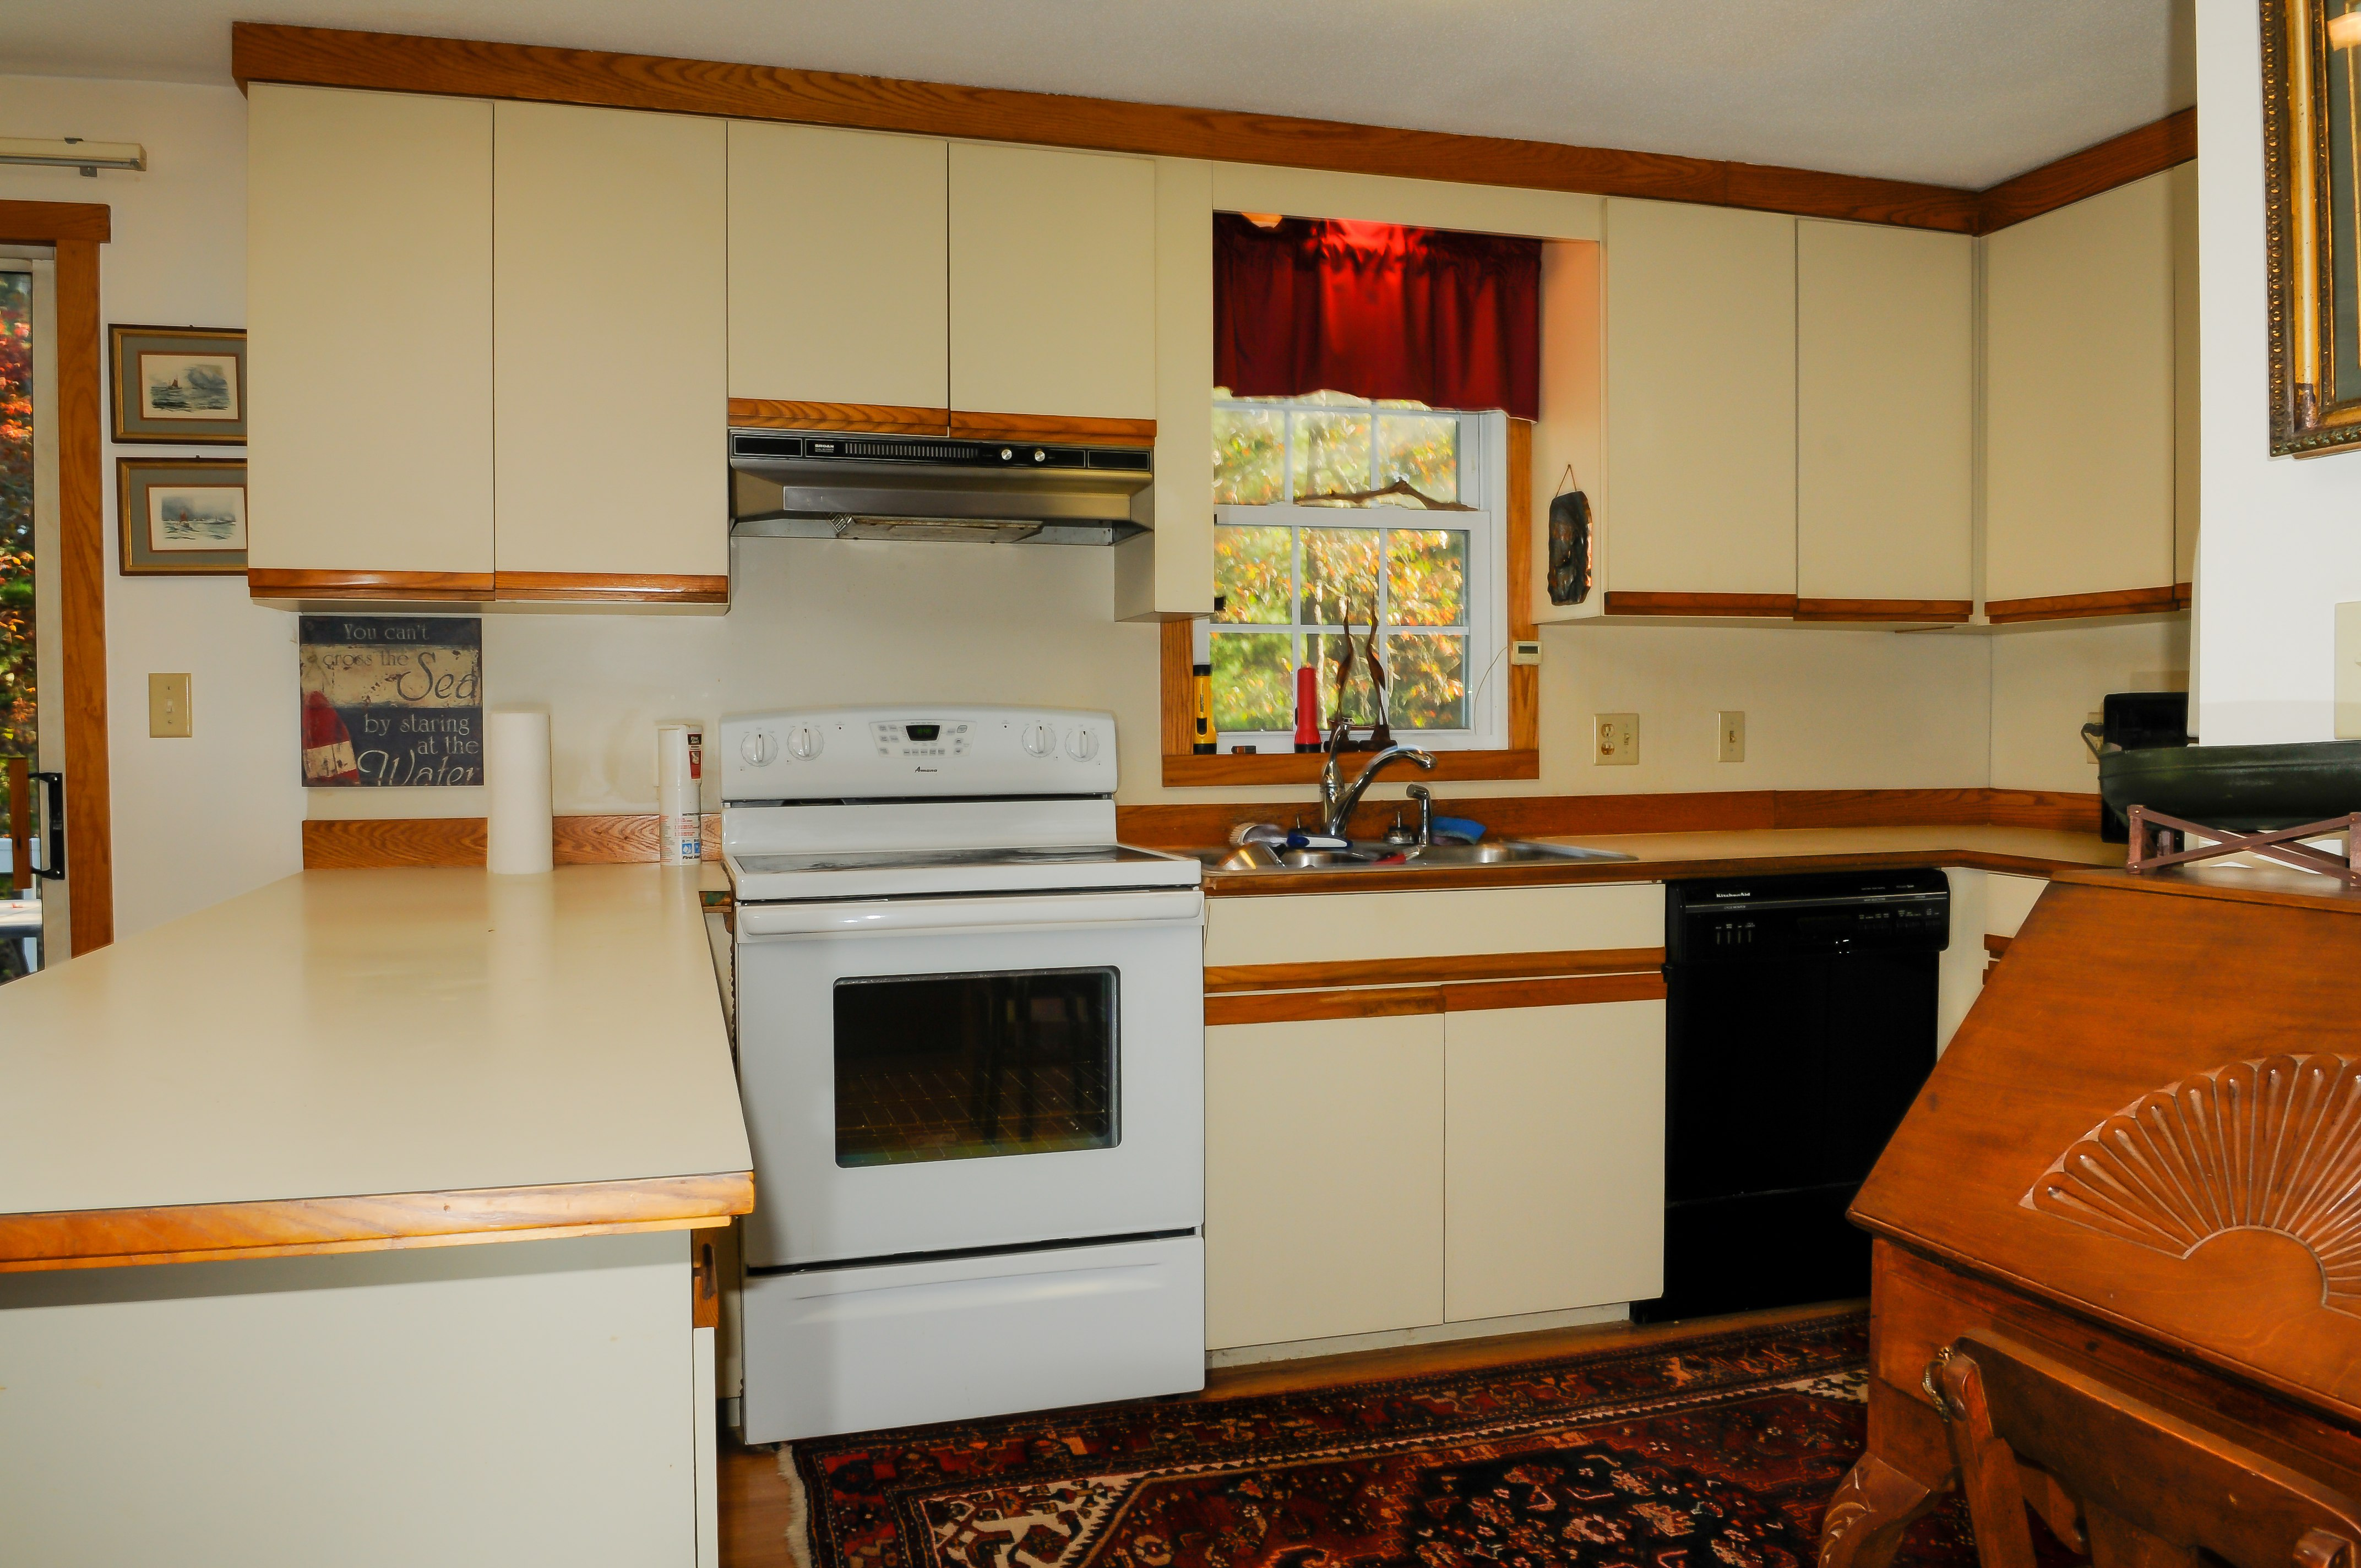 cabinet refacing reface kitchen cabinets cabinet refacing Cabinet Refacing blank